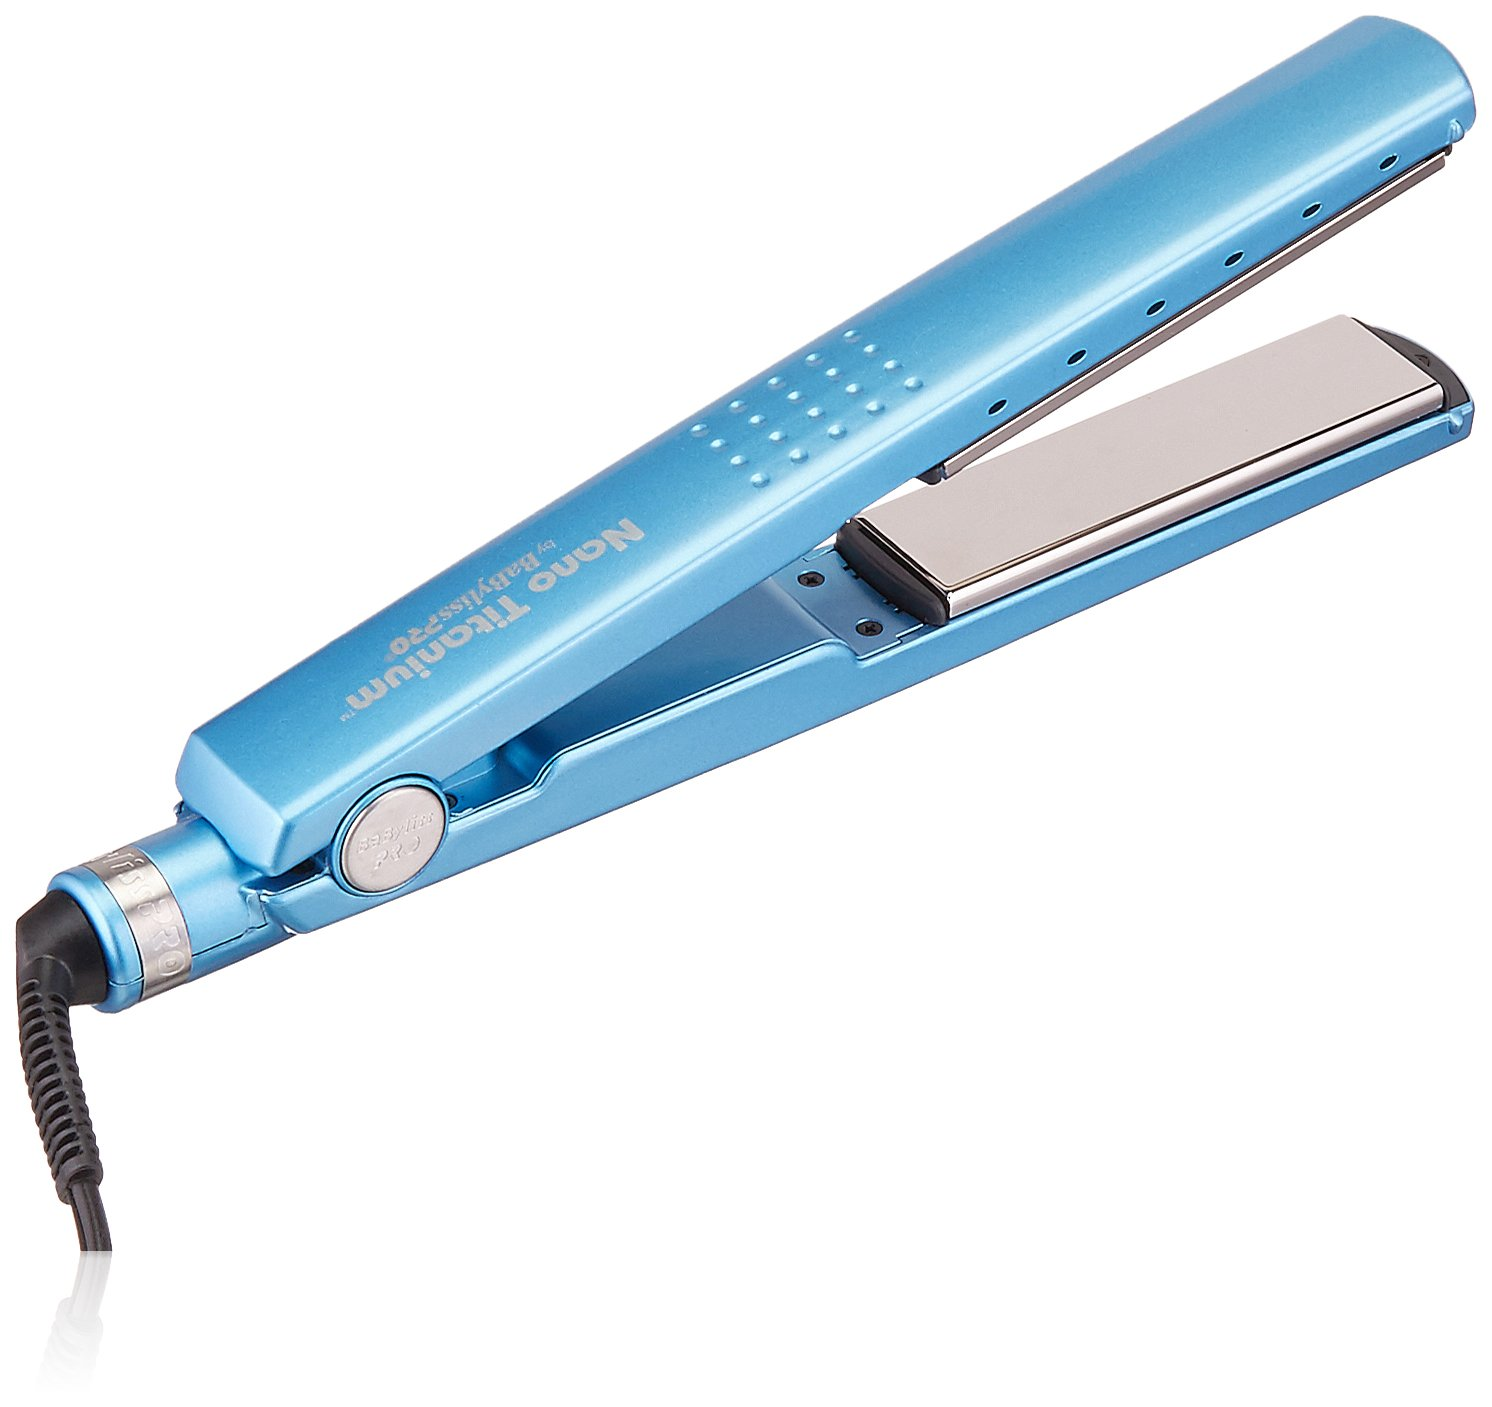 The Best Flat Iron For Thick Hair 2020 – Reviews And Top Picks 4